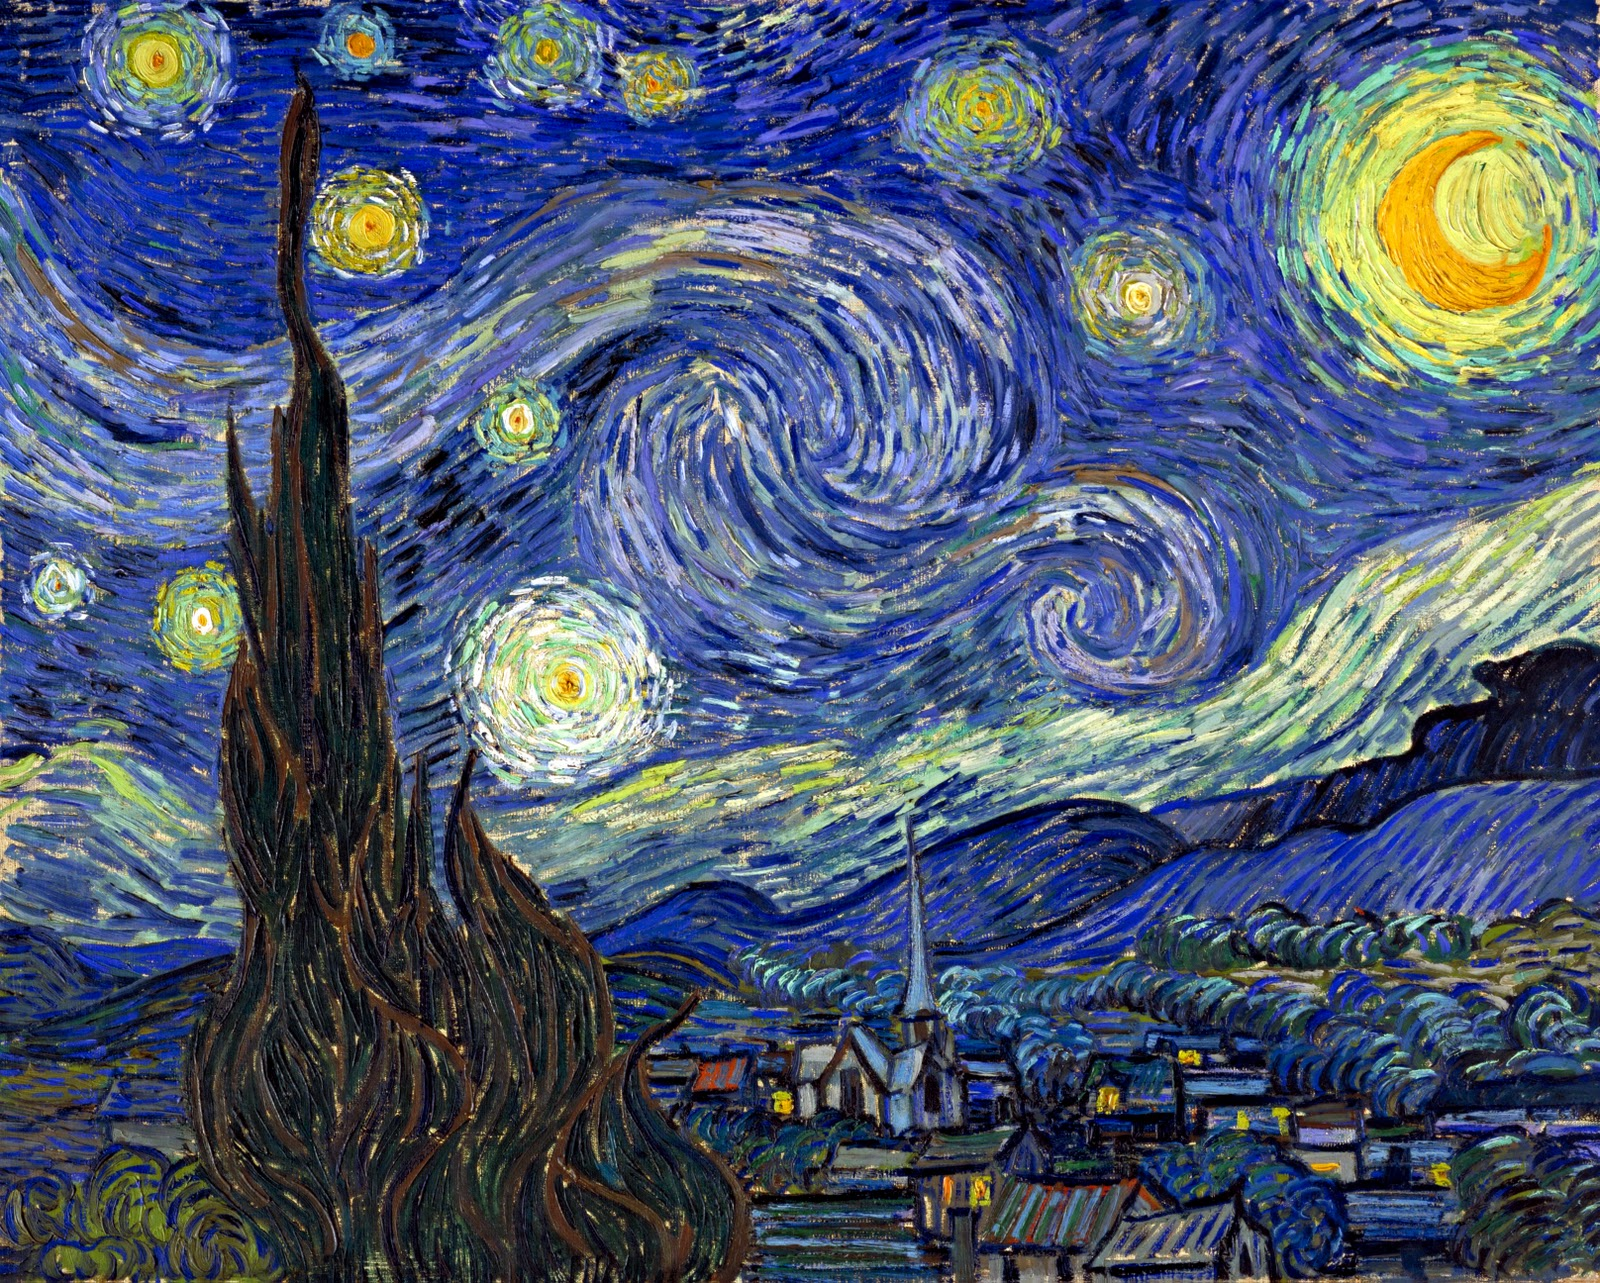 th writing seminar blog the starry night by vincent van gogh the starry night by vincent van gogh